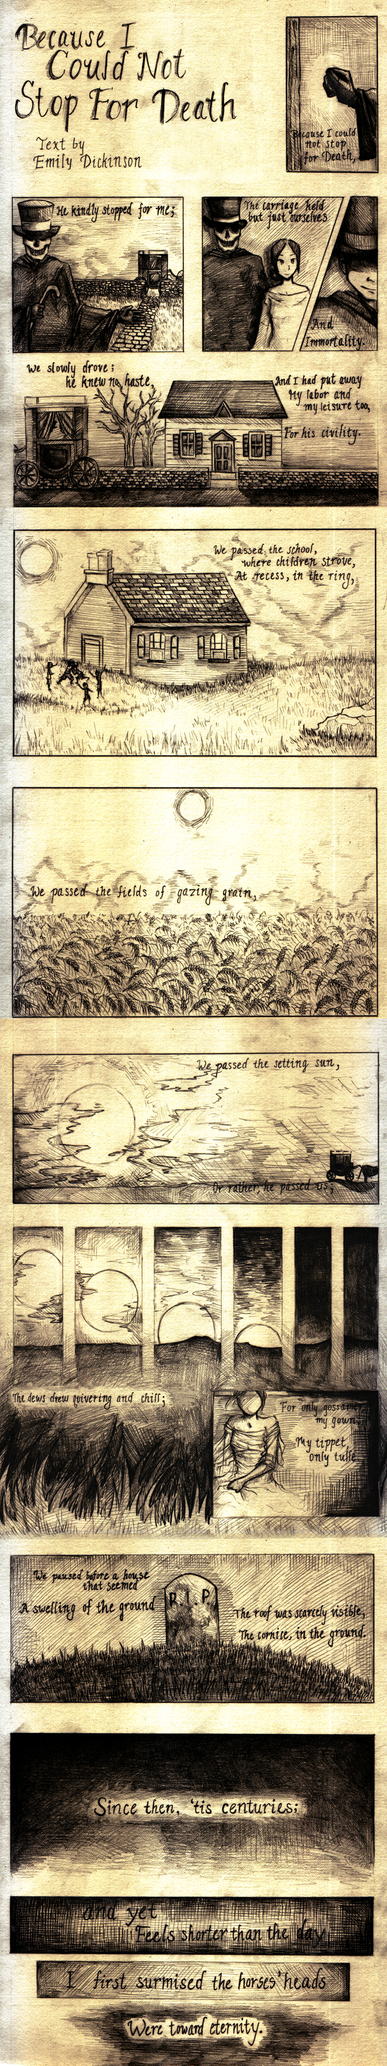 Comics-ified Dickinson Poem by xyai